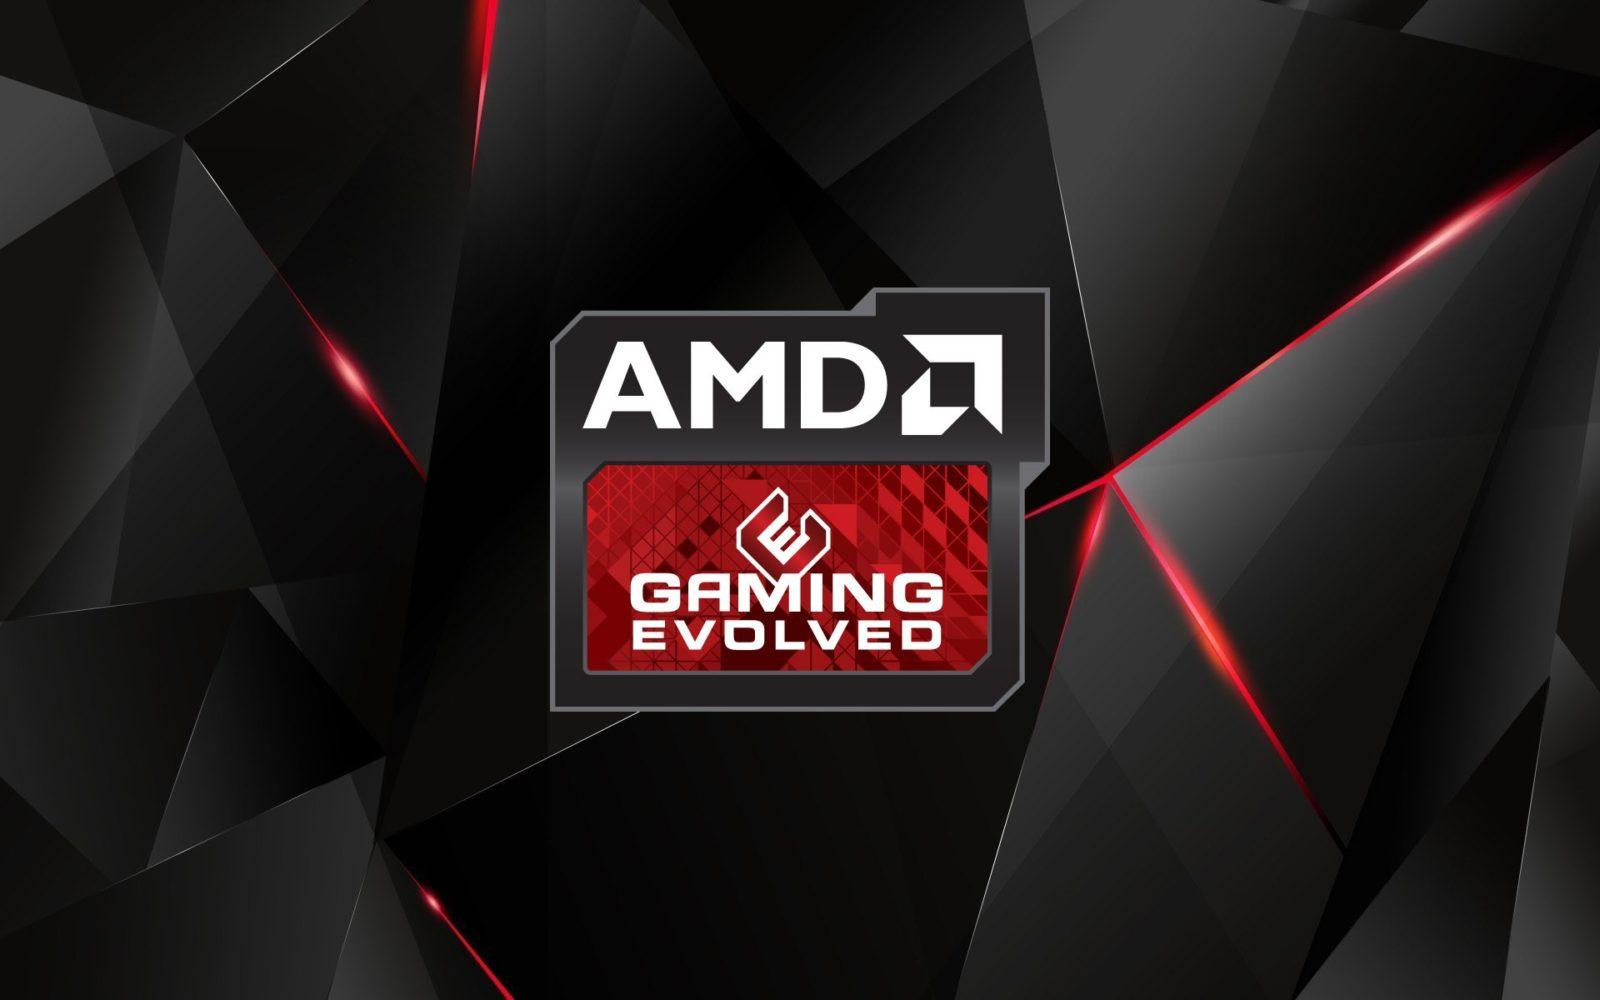 How does AMD feel about mining? Company position